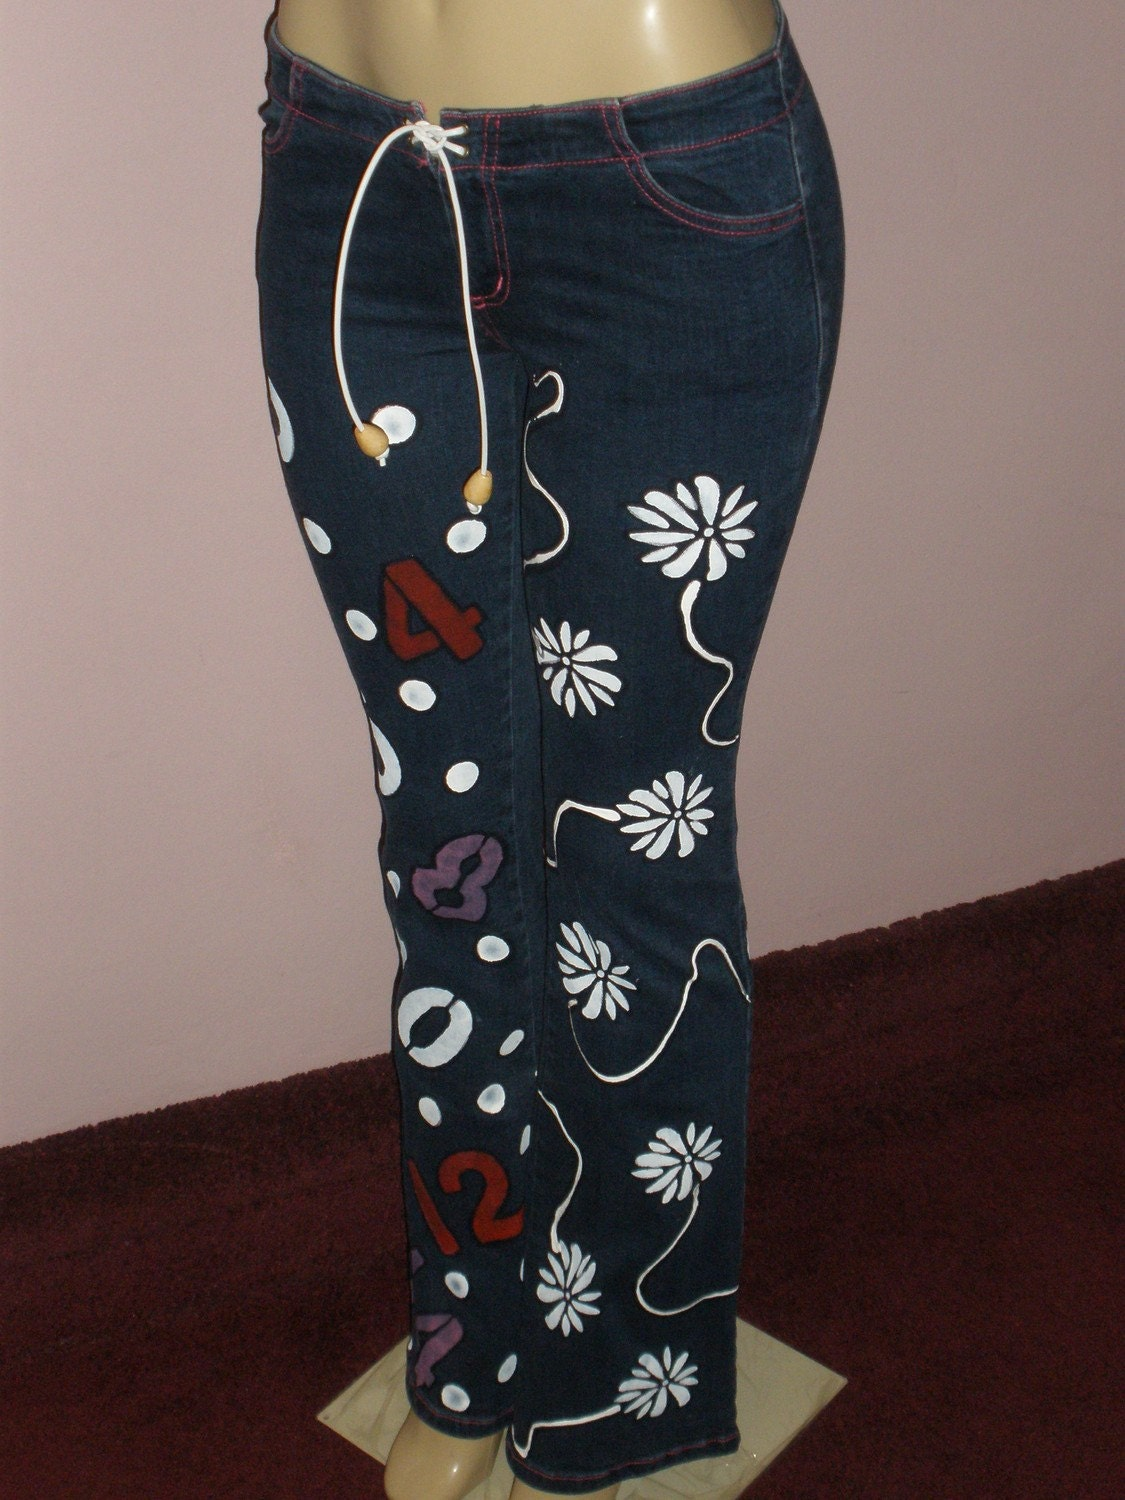 Eye Catching Recreated Uniquely Painted Stretch Denim Jeans